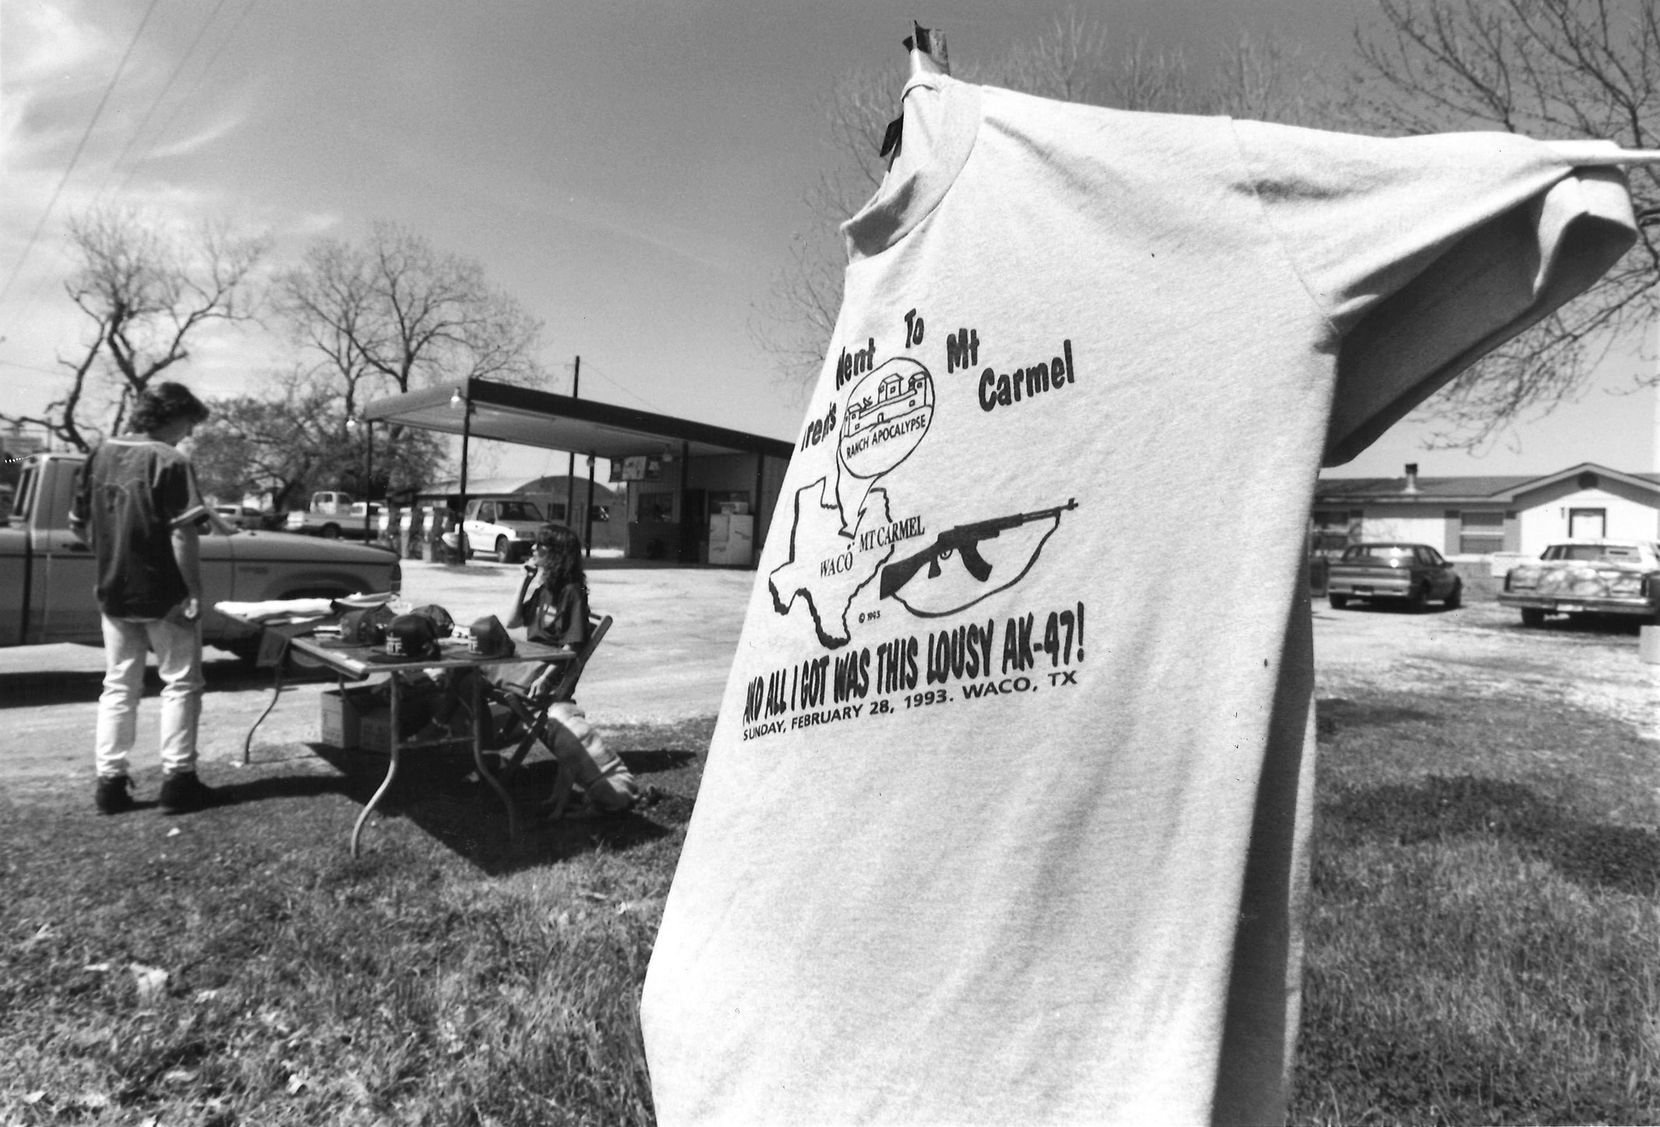 """March 23, 1993: Linda Cox sold T-shirts near the compound, including this shirt reading, """"My parents went to Mt. Carmel and all I got was this lousy AK-47!"""""""